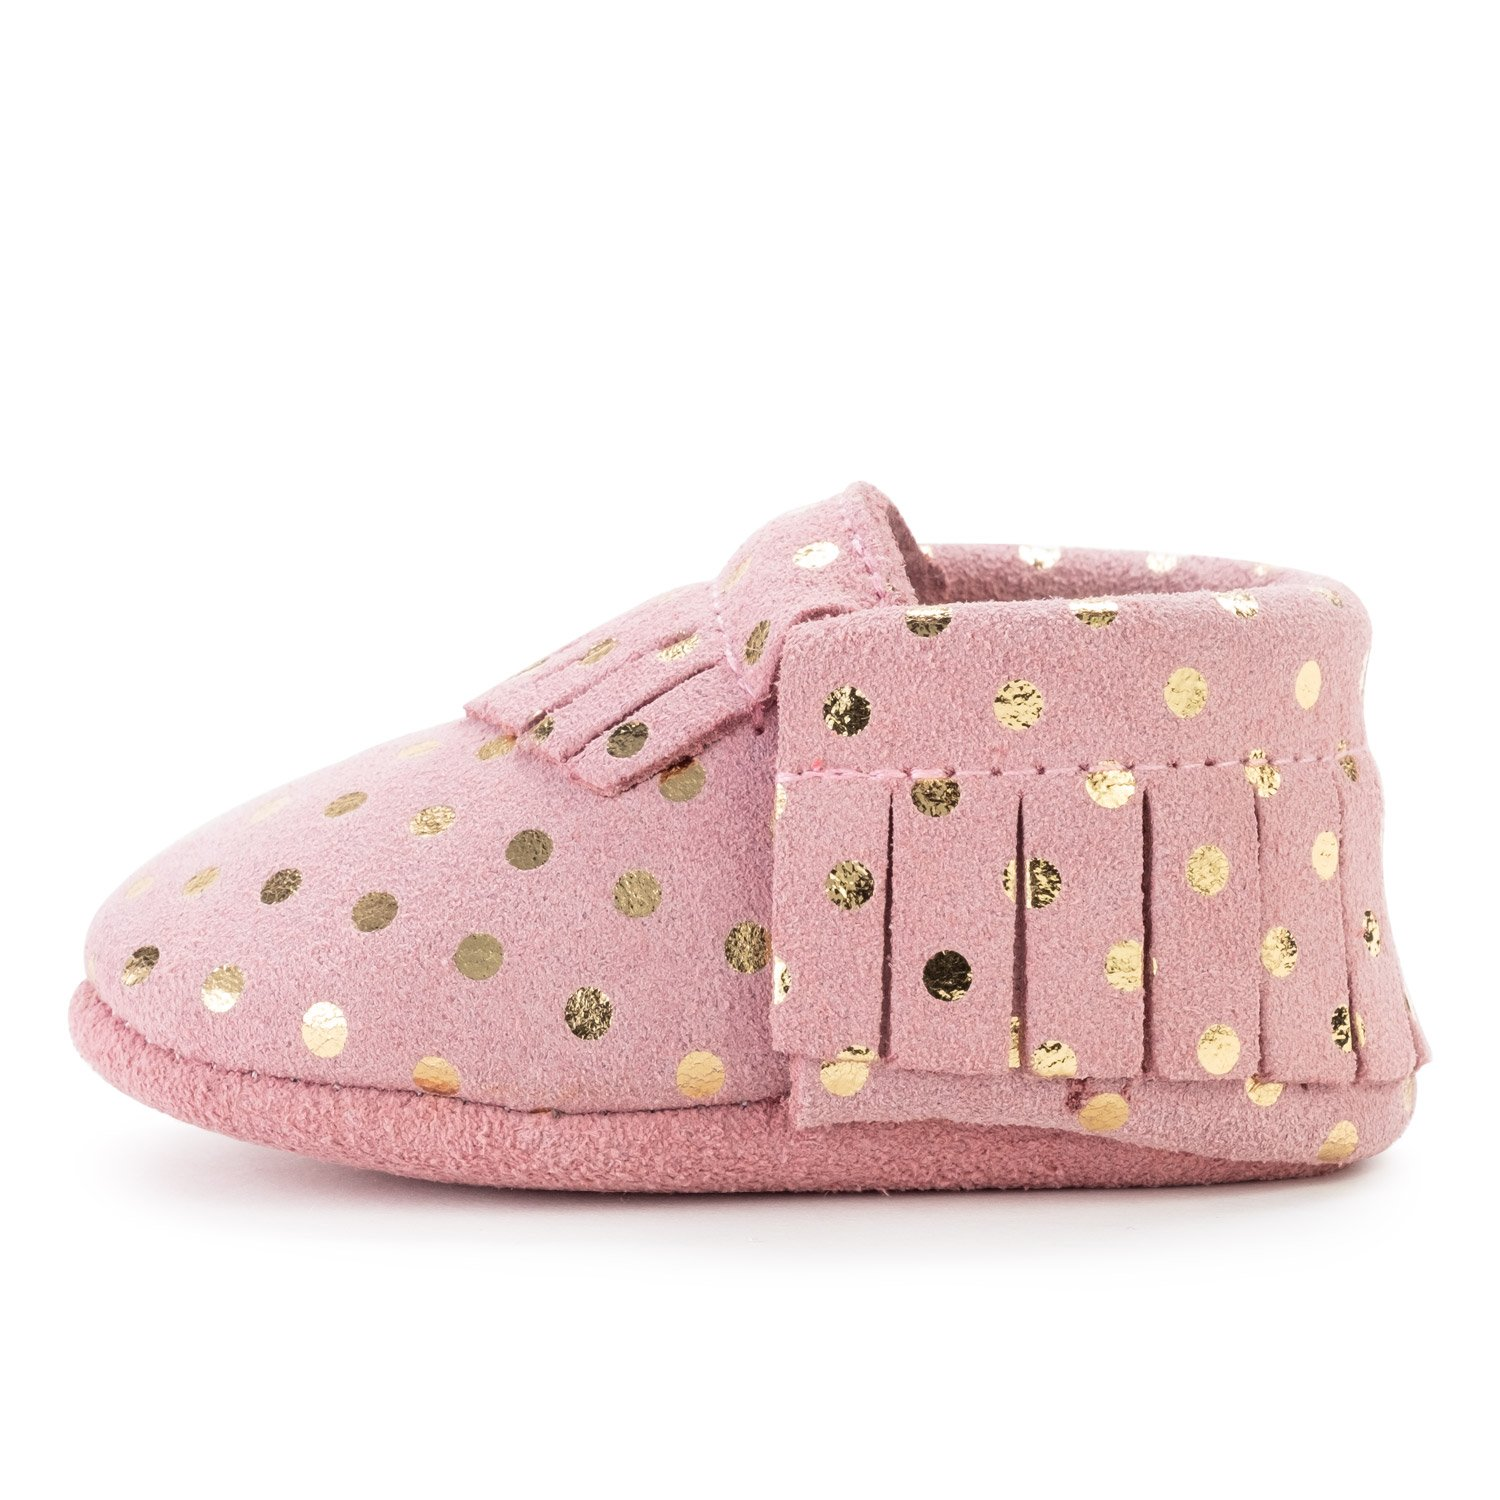 BirdRock Baby Moccasins - 30+ Styles for Boys & Girls! Every Pair Feeds a Child (Infant | 0-6 Months | US 2, Confetti)